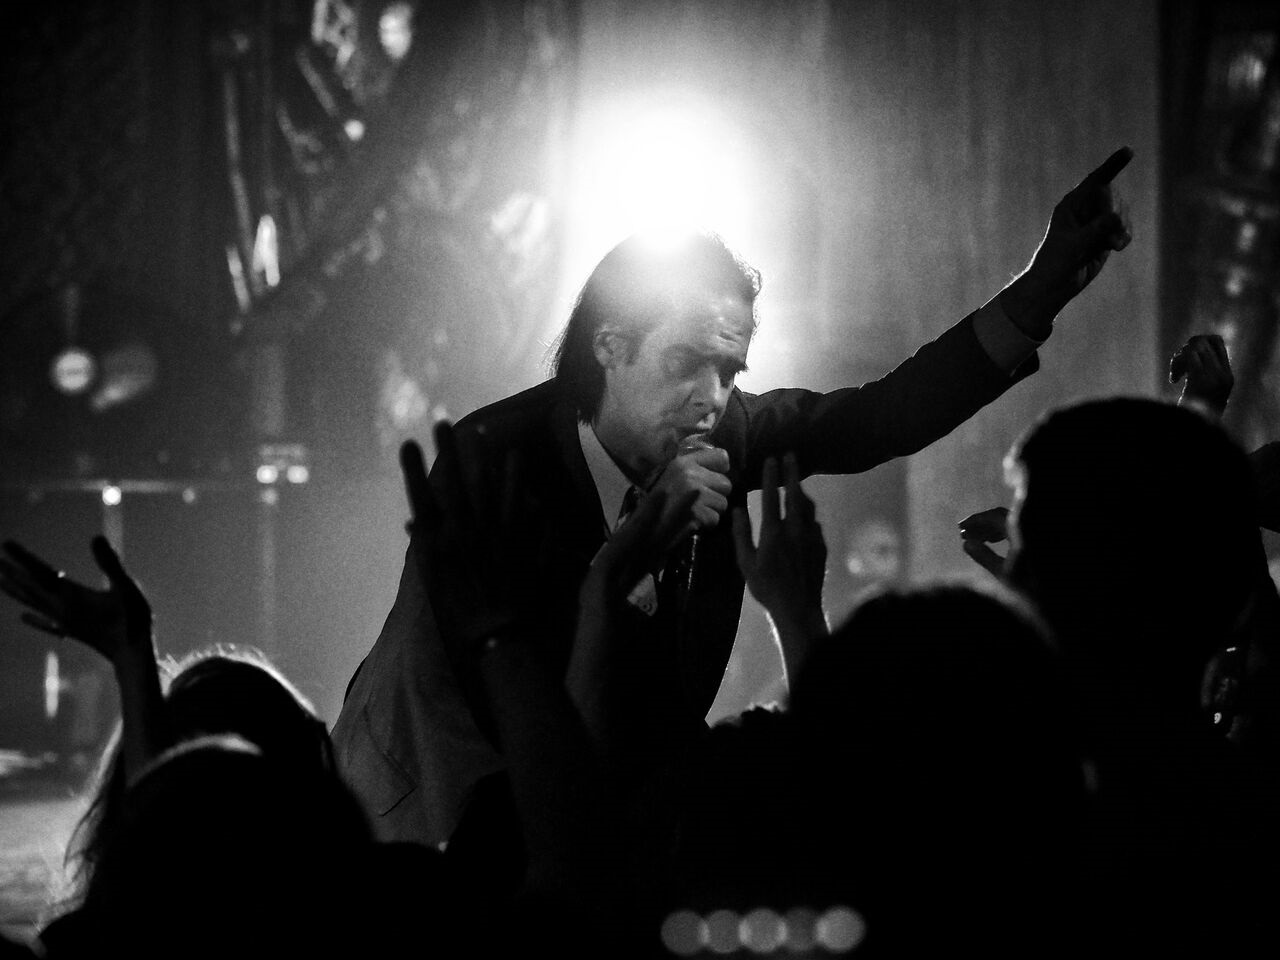 Nick Cave and the Bad Seeds announce Manchester date. Find out how to get tickets